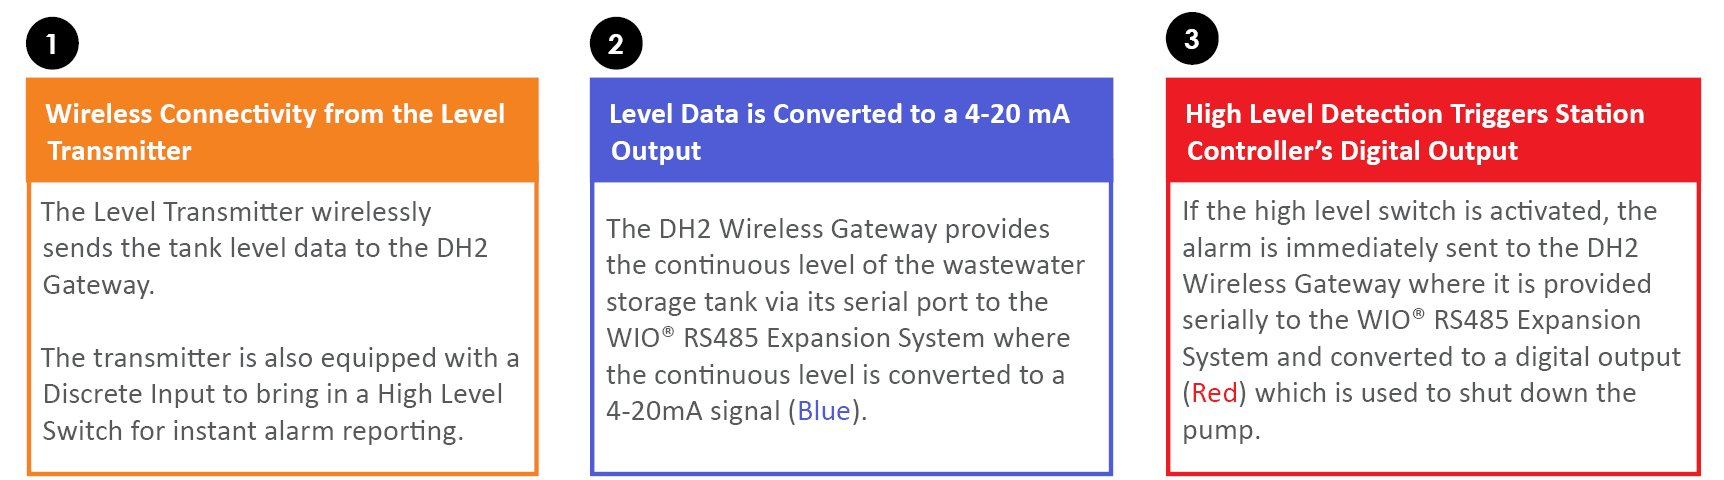 Wireless Tank Level Monitoring System At Quick Recovery Peak Load Simple Circuit Diagram For Detecting Loss Of 4 20 Ma Signal Wio Rs485 Expansion With Blue And Digital I O Module Red Accepting The Serial Output From Dh2 Gateway Converting